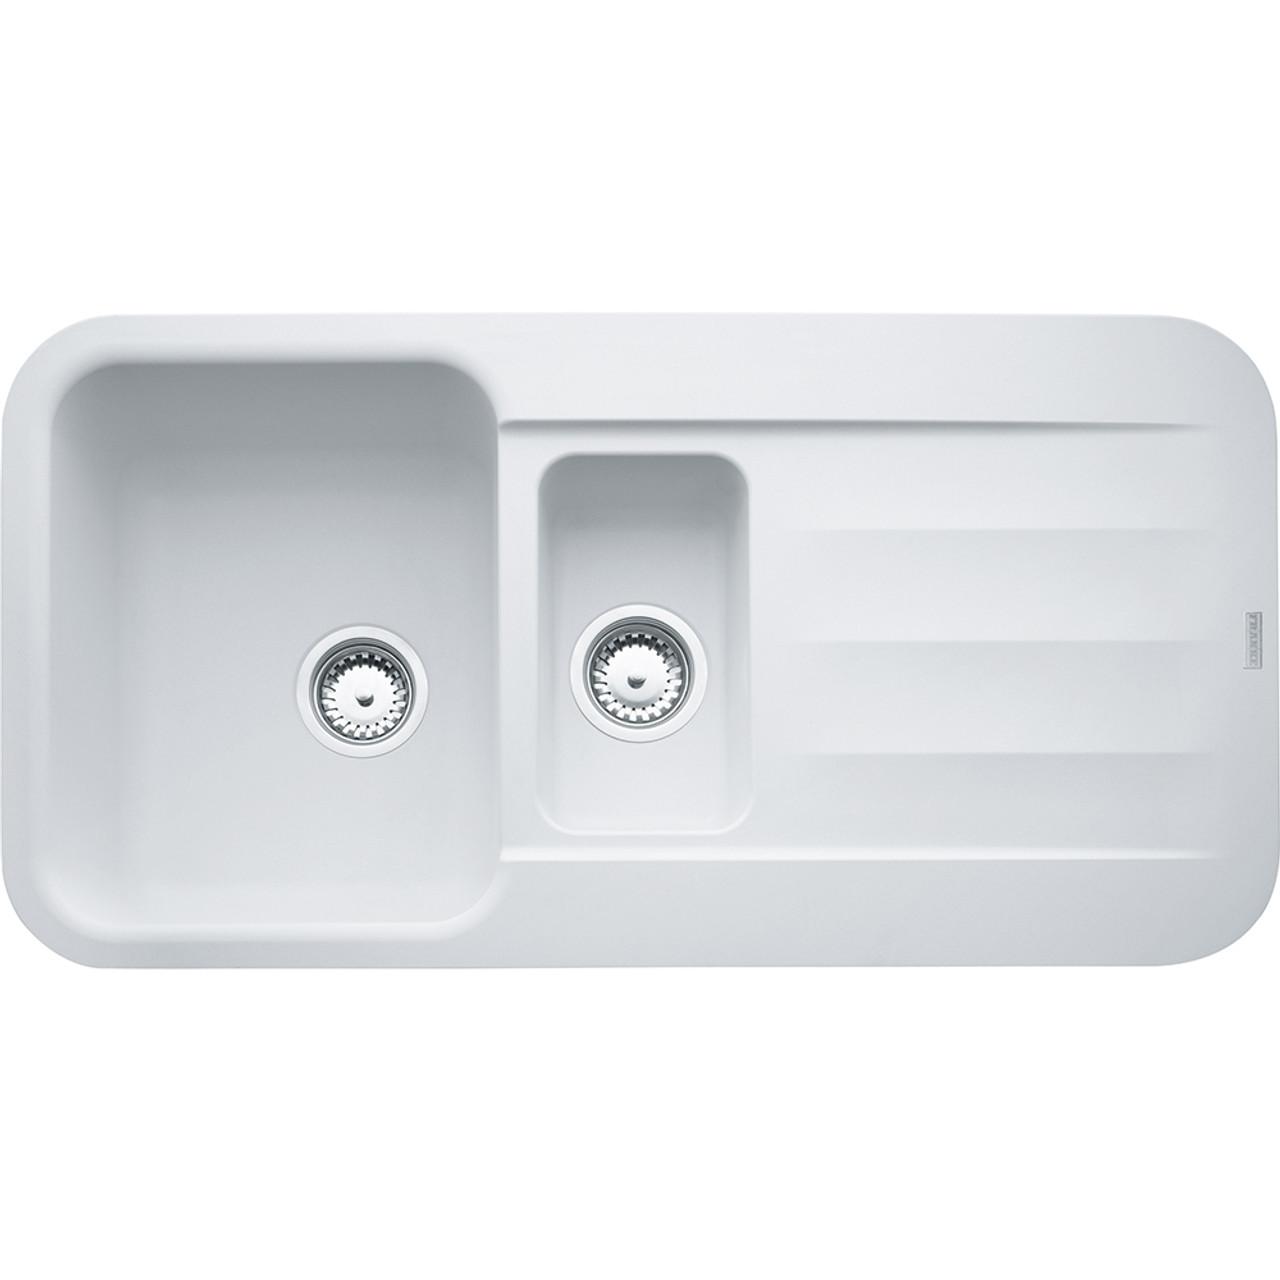 ... Franke Pebel PBG651 Fragranite Polar White Kitchen Sink ...